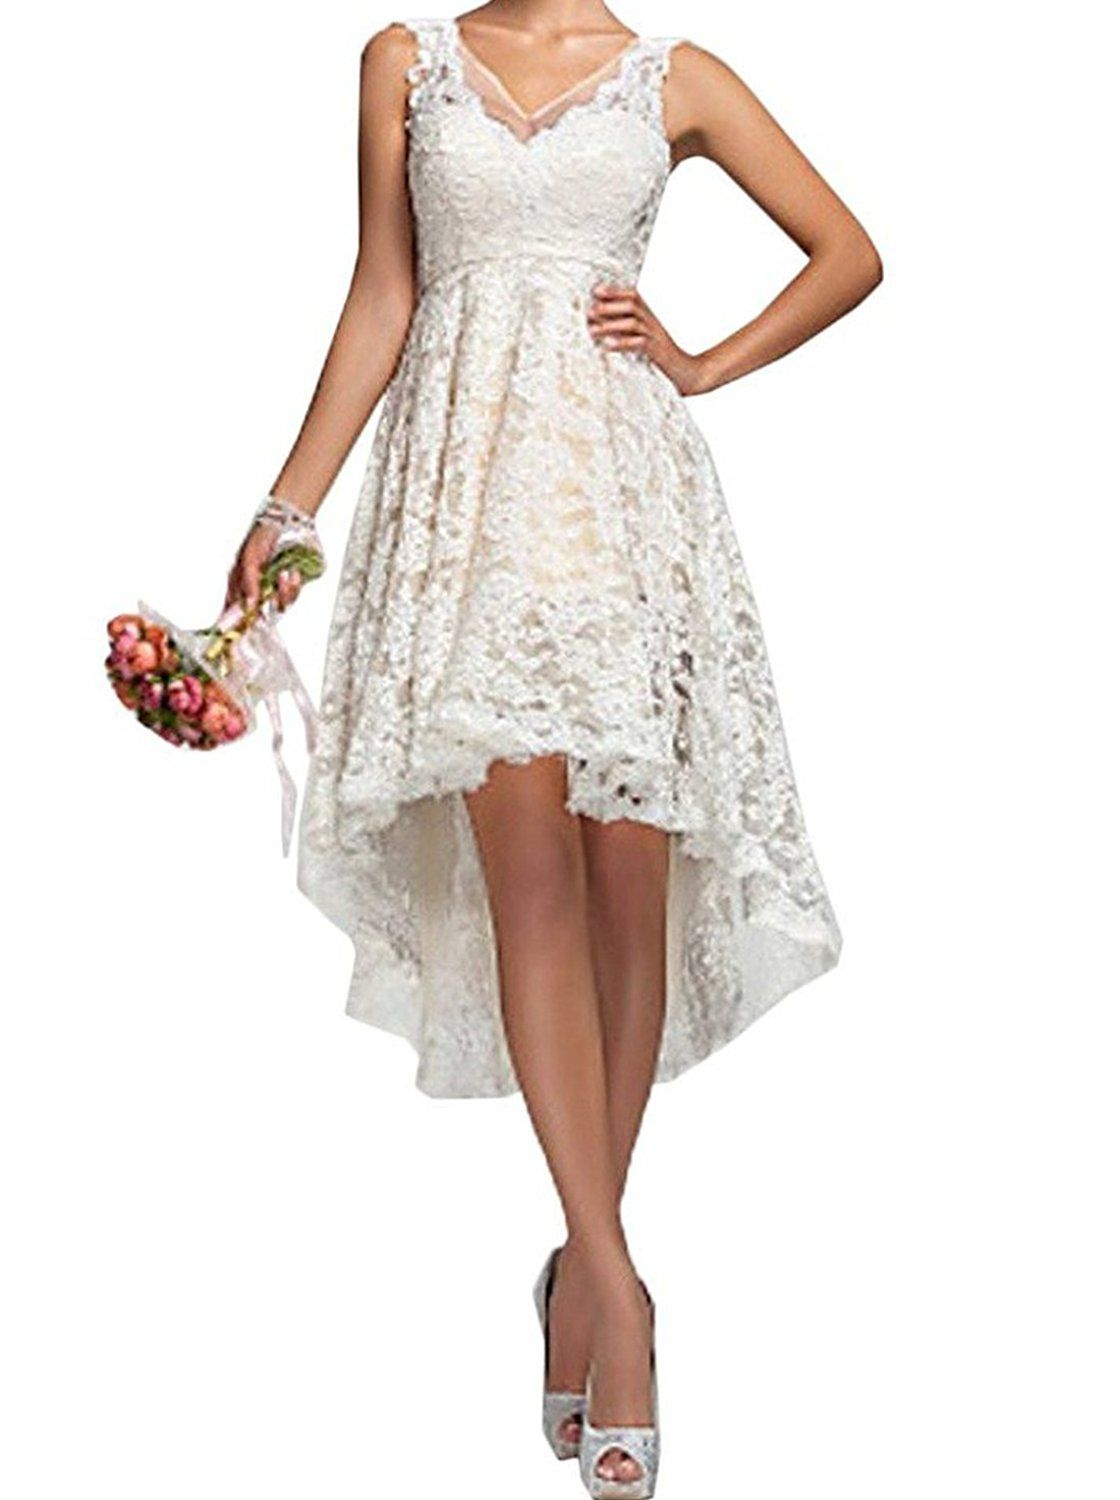 Prom queen womenus hilow vneck lace prom gown short bridal gownes